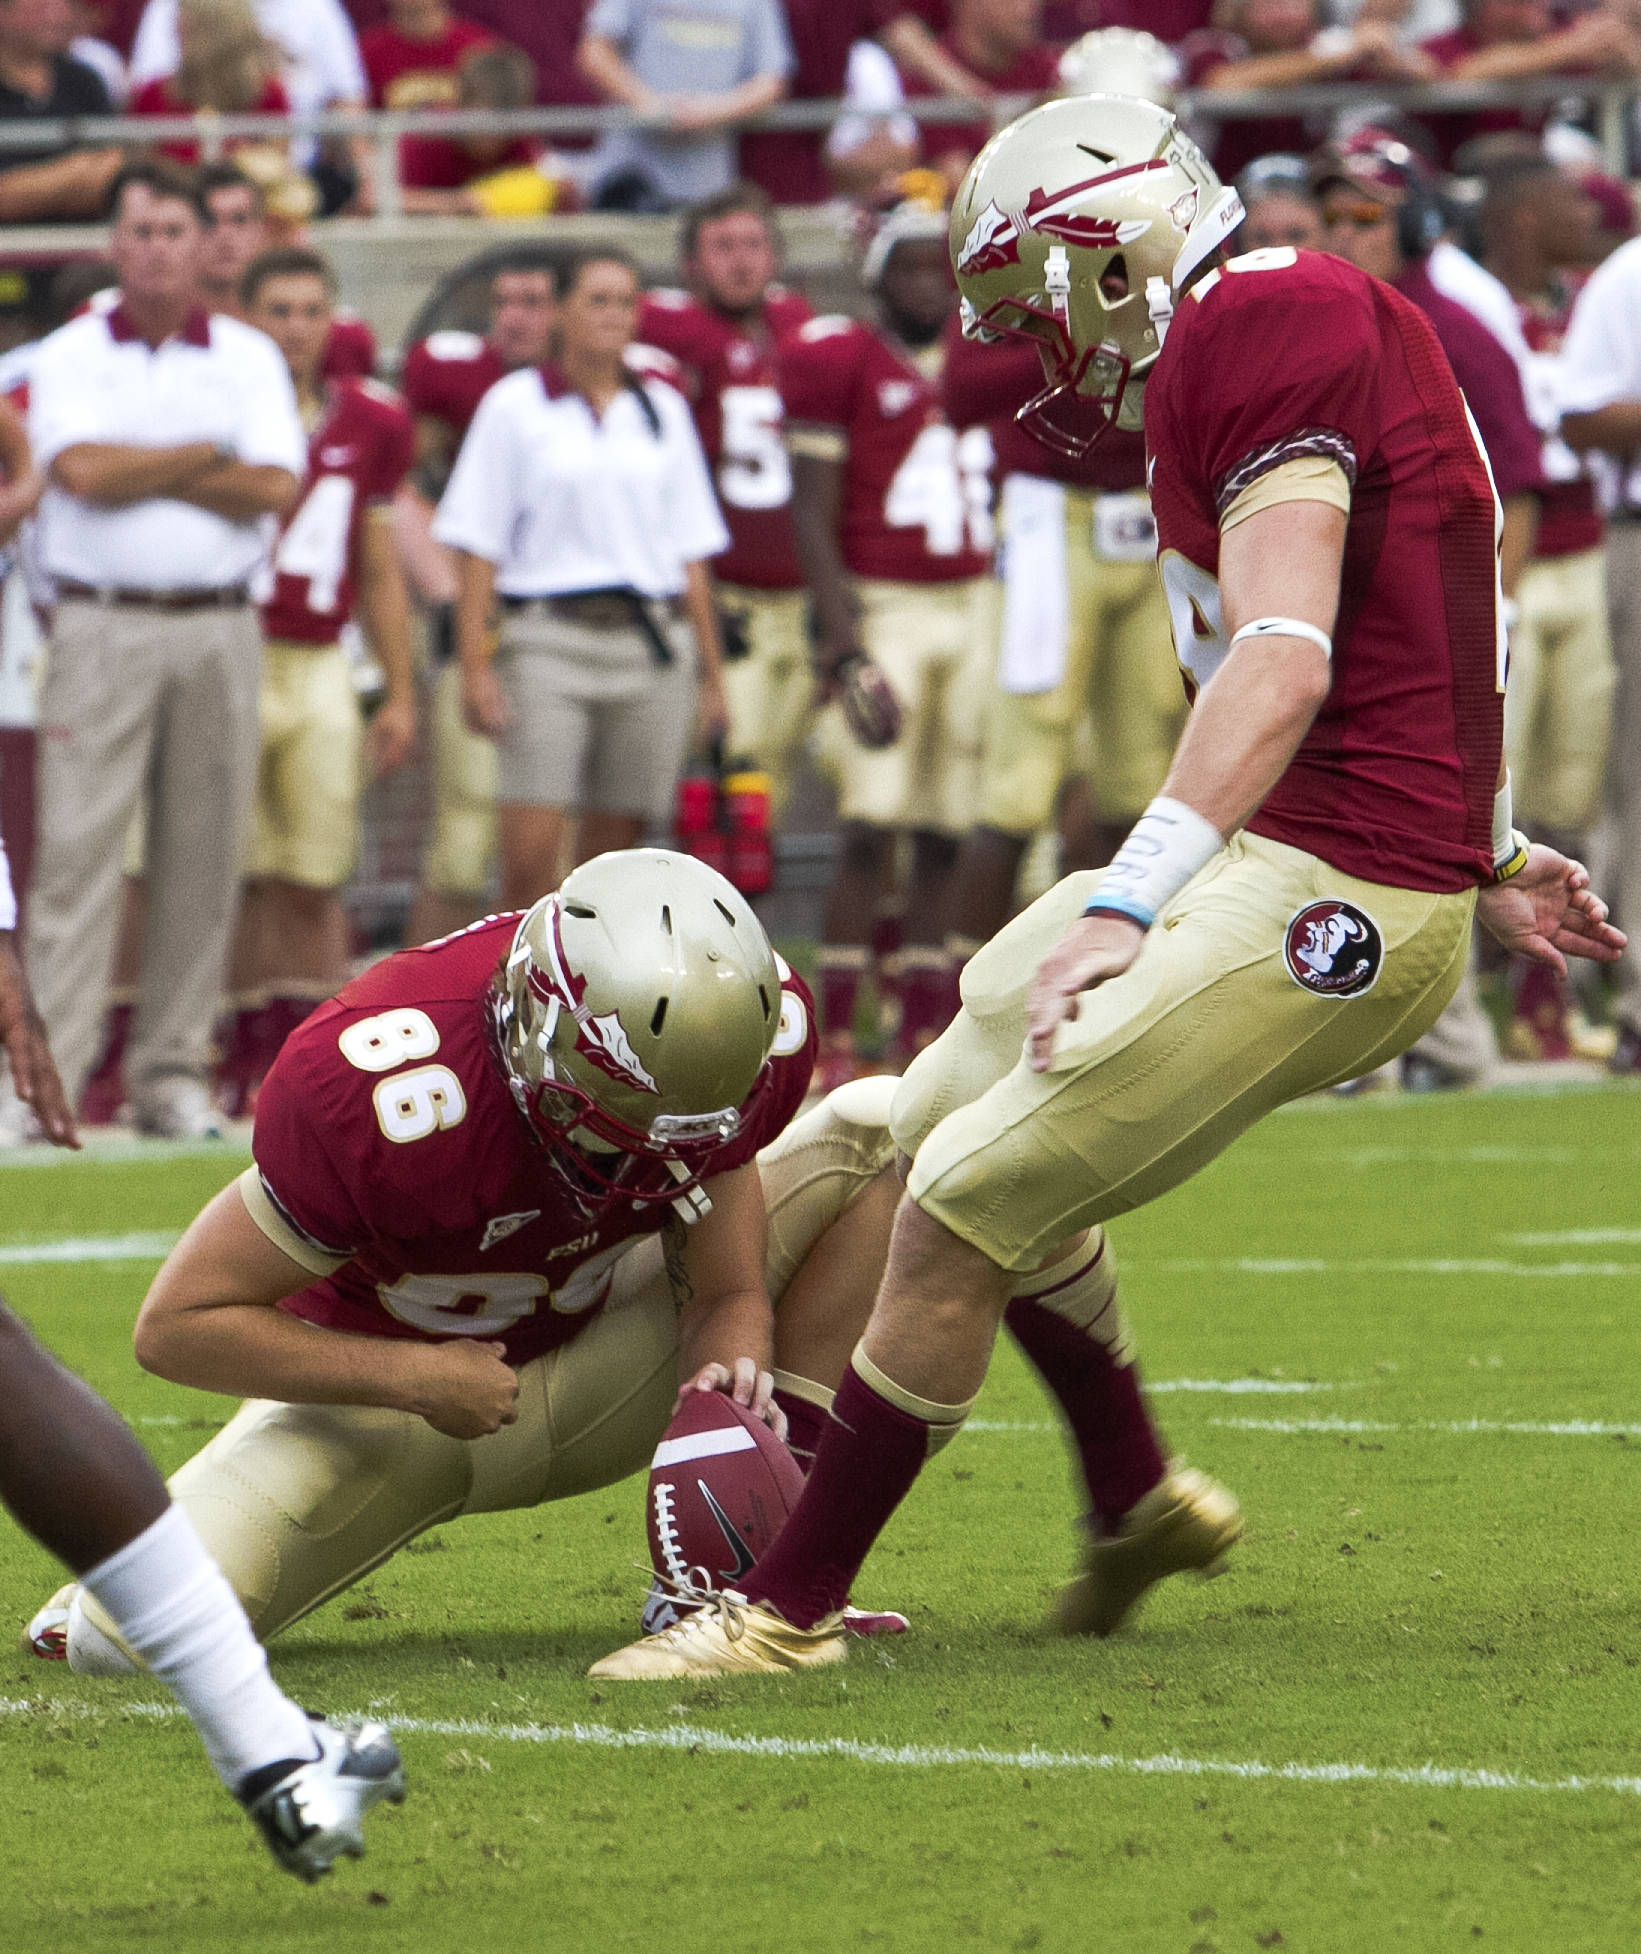 Chris Revell (86), Dustin Hopkins (18),  FSU vs Savannah State, 9/8/12 (Photo by Steve Musco)